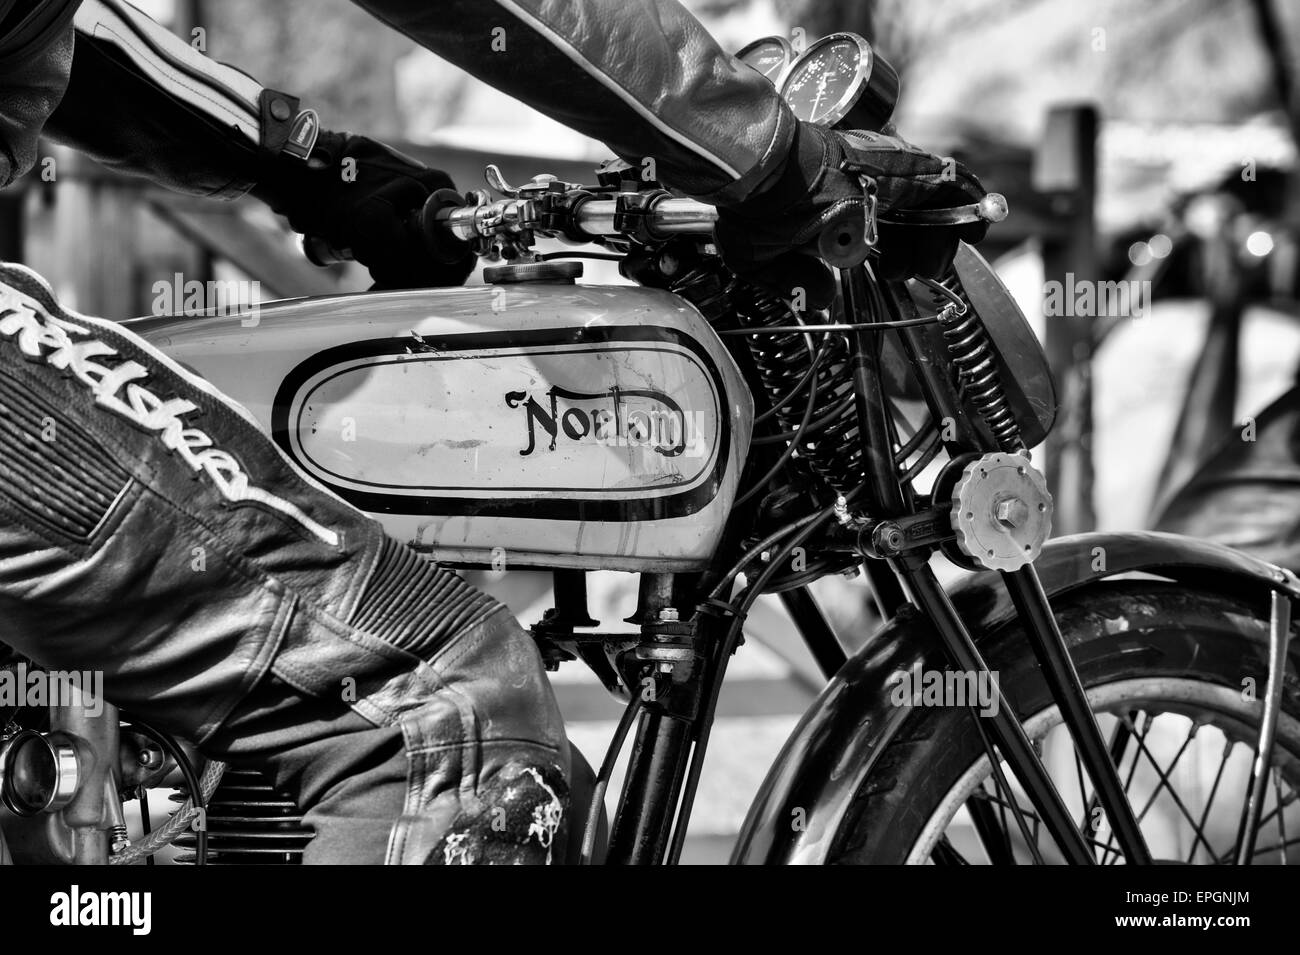 Biker on a vintage norton motorcycle. Black and white - Stock Image